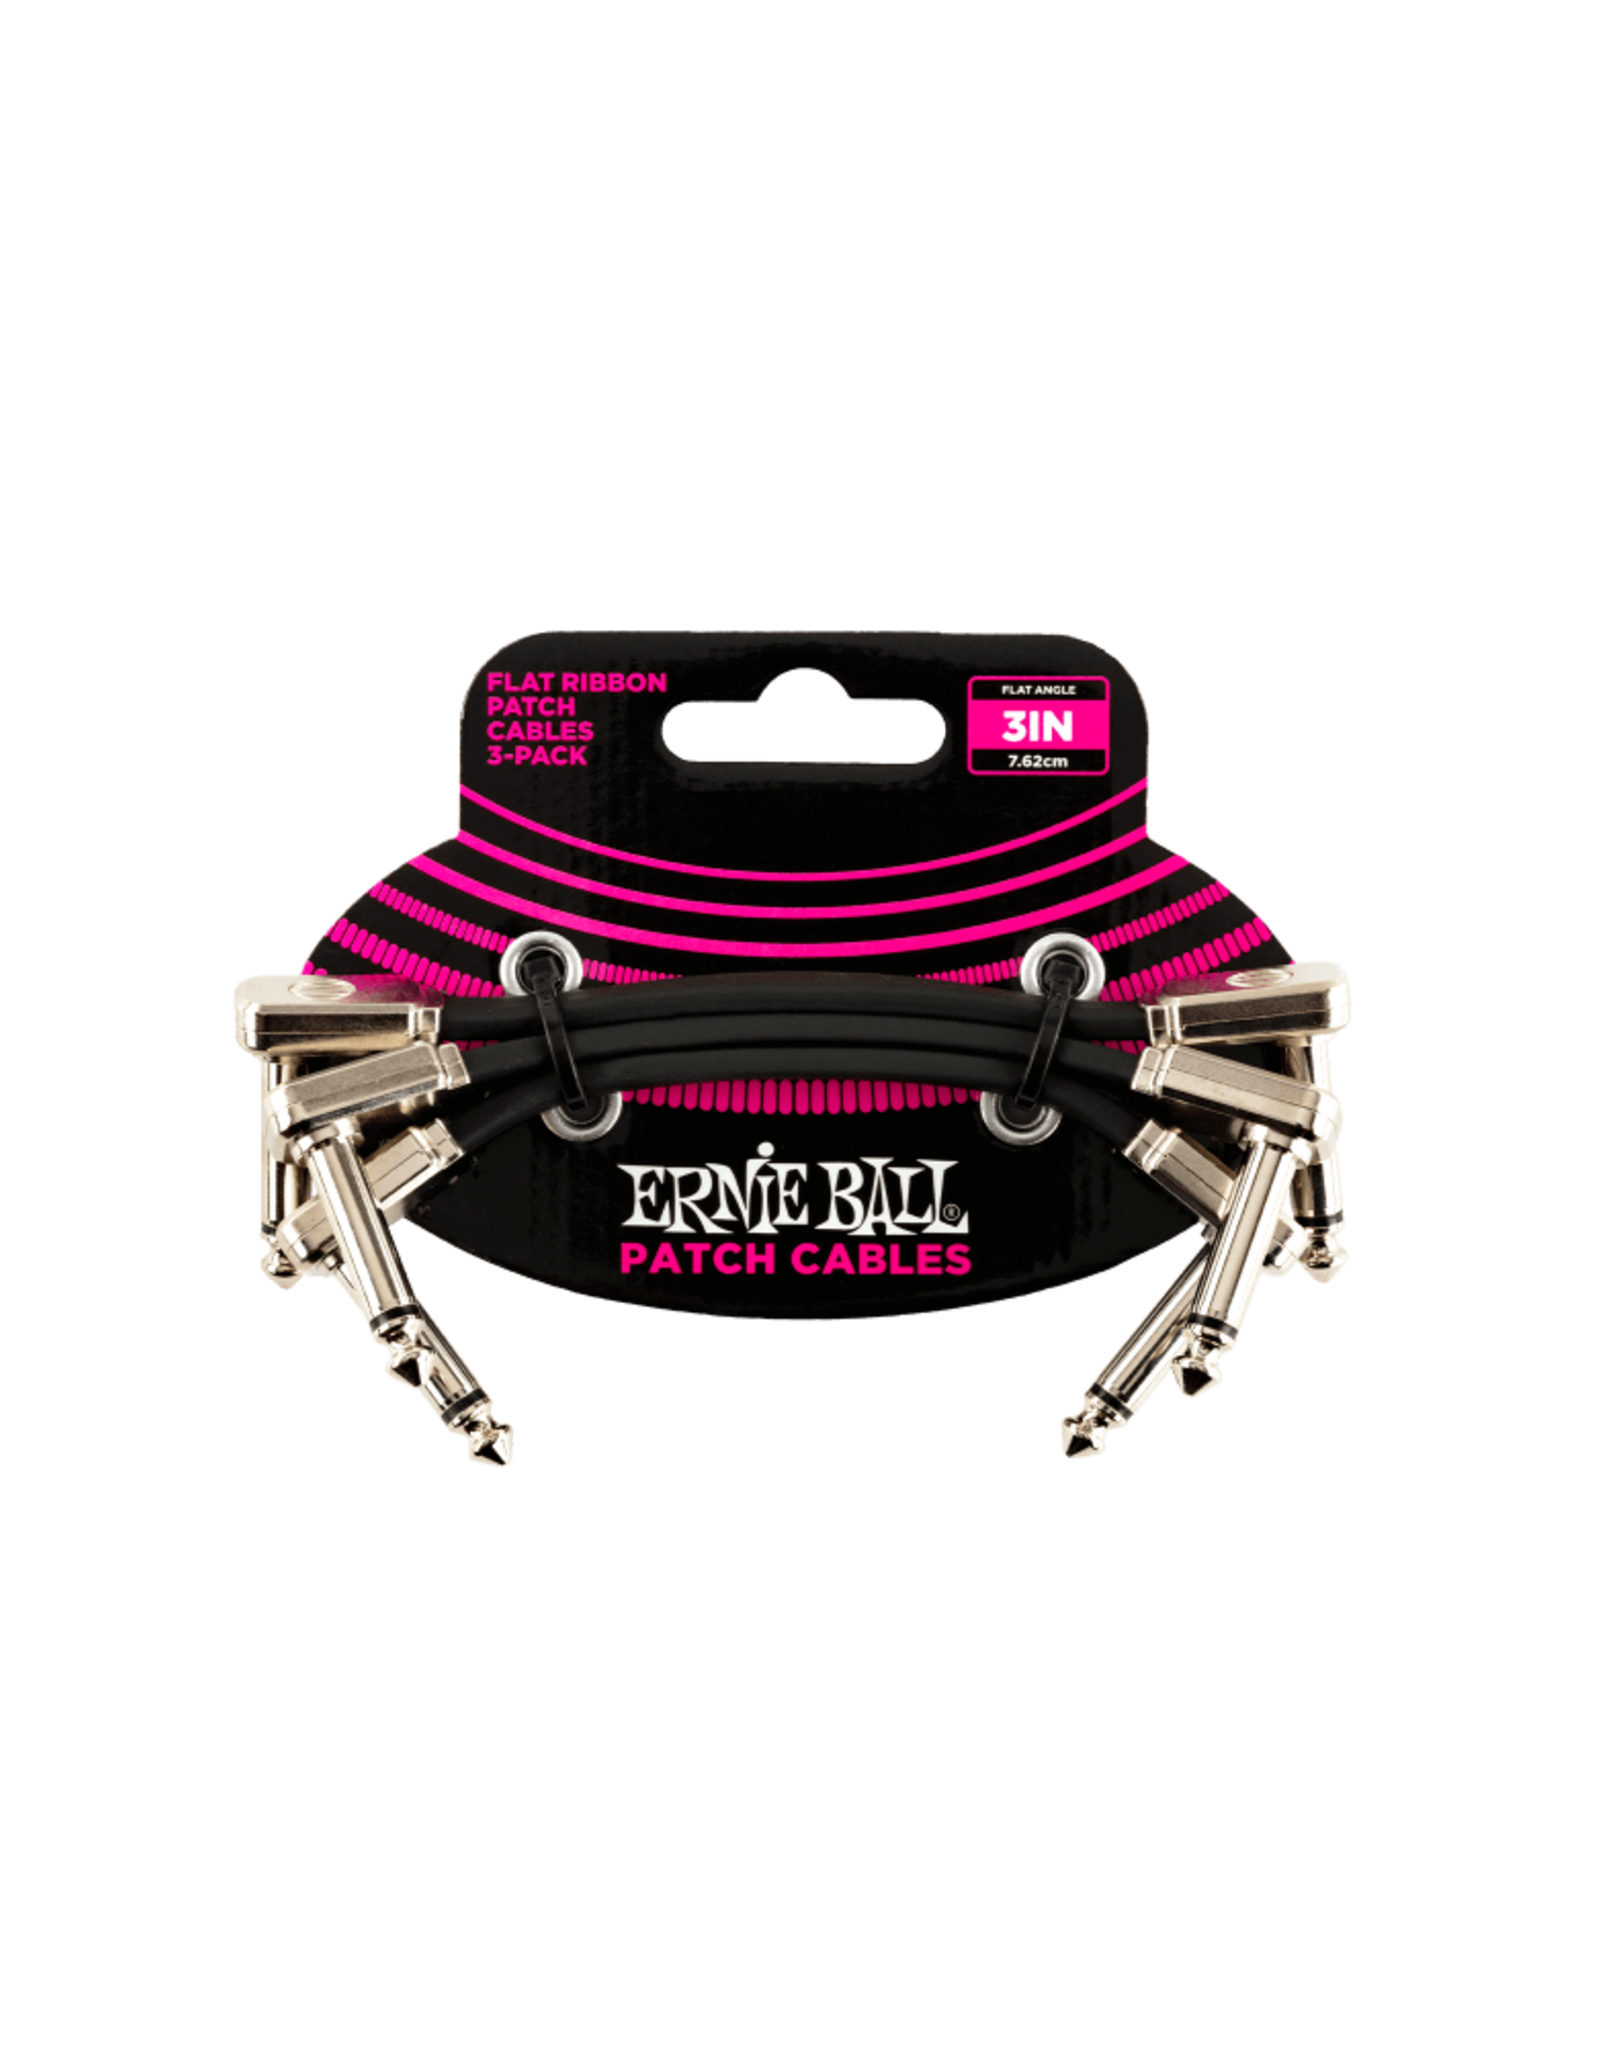 "Ernie Ball Ernie Ball 12"" Flat Ribbon Patch Cable 3-Pack"